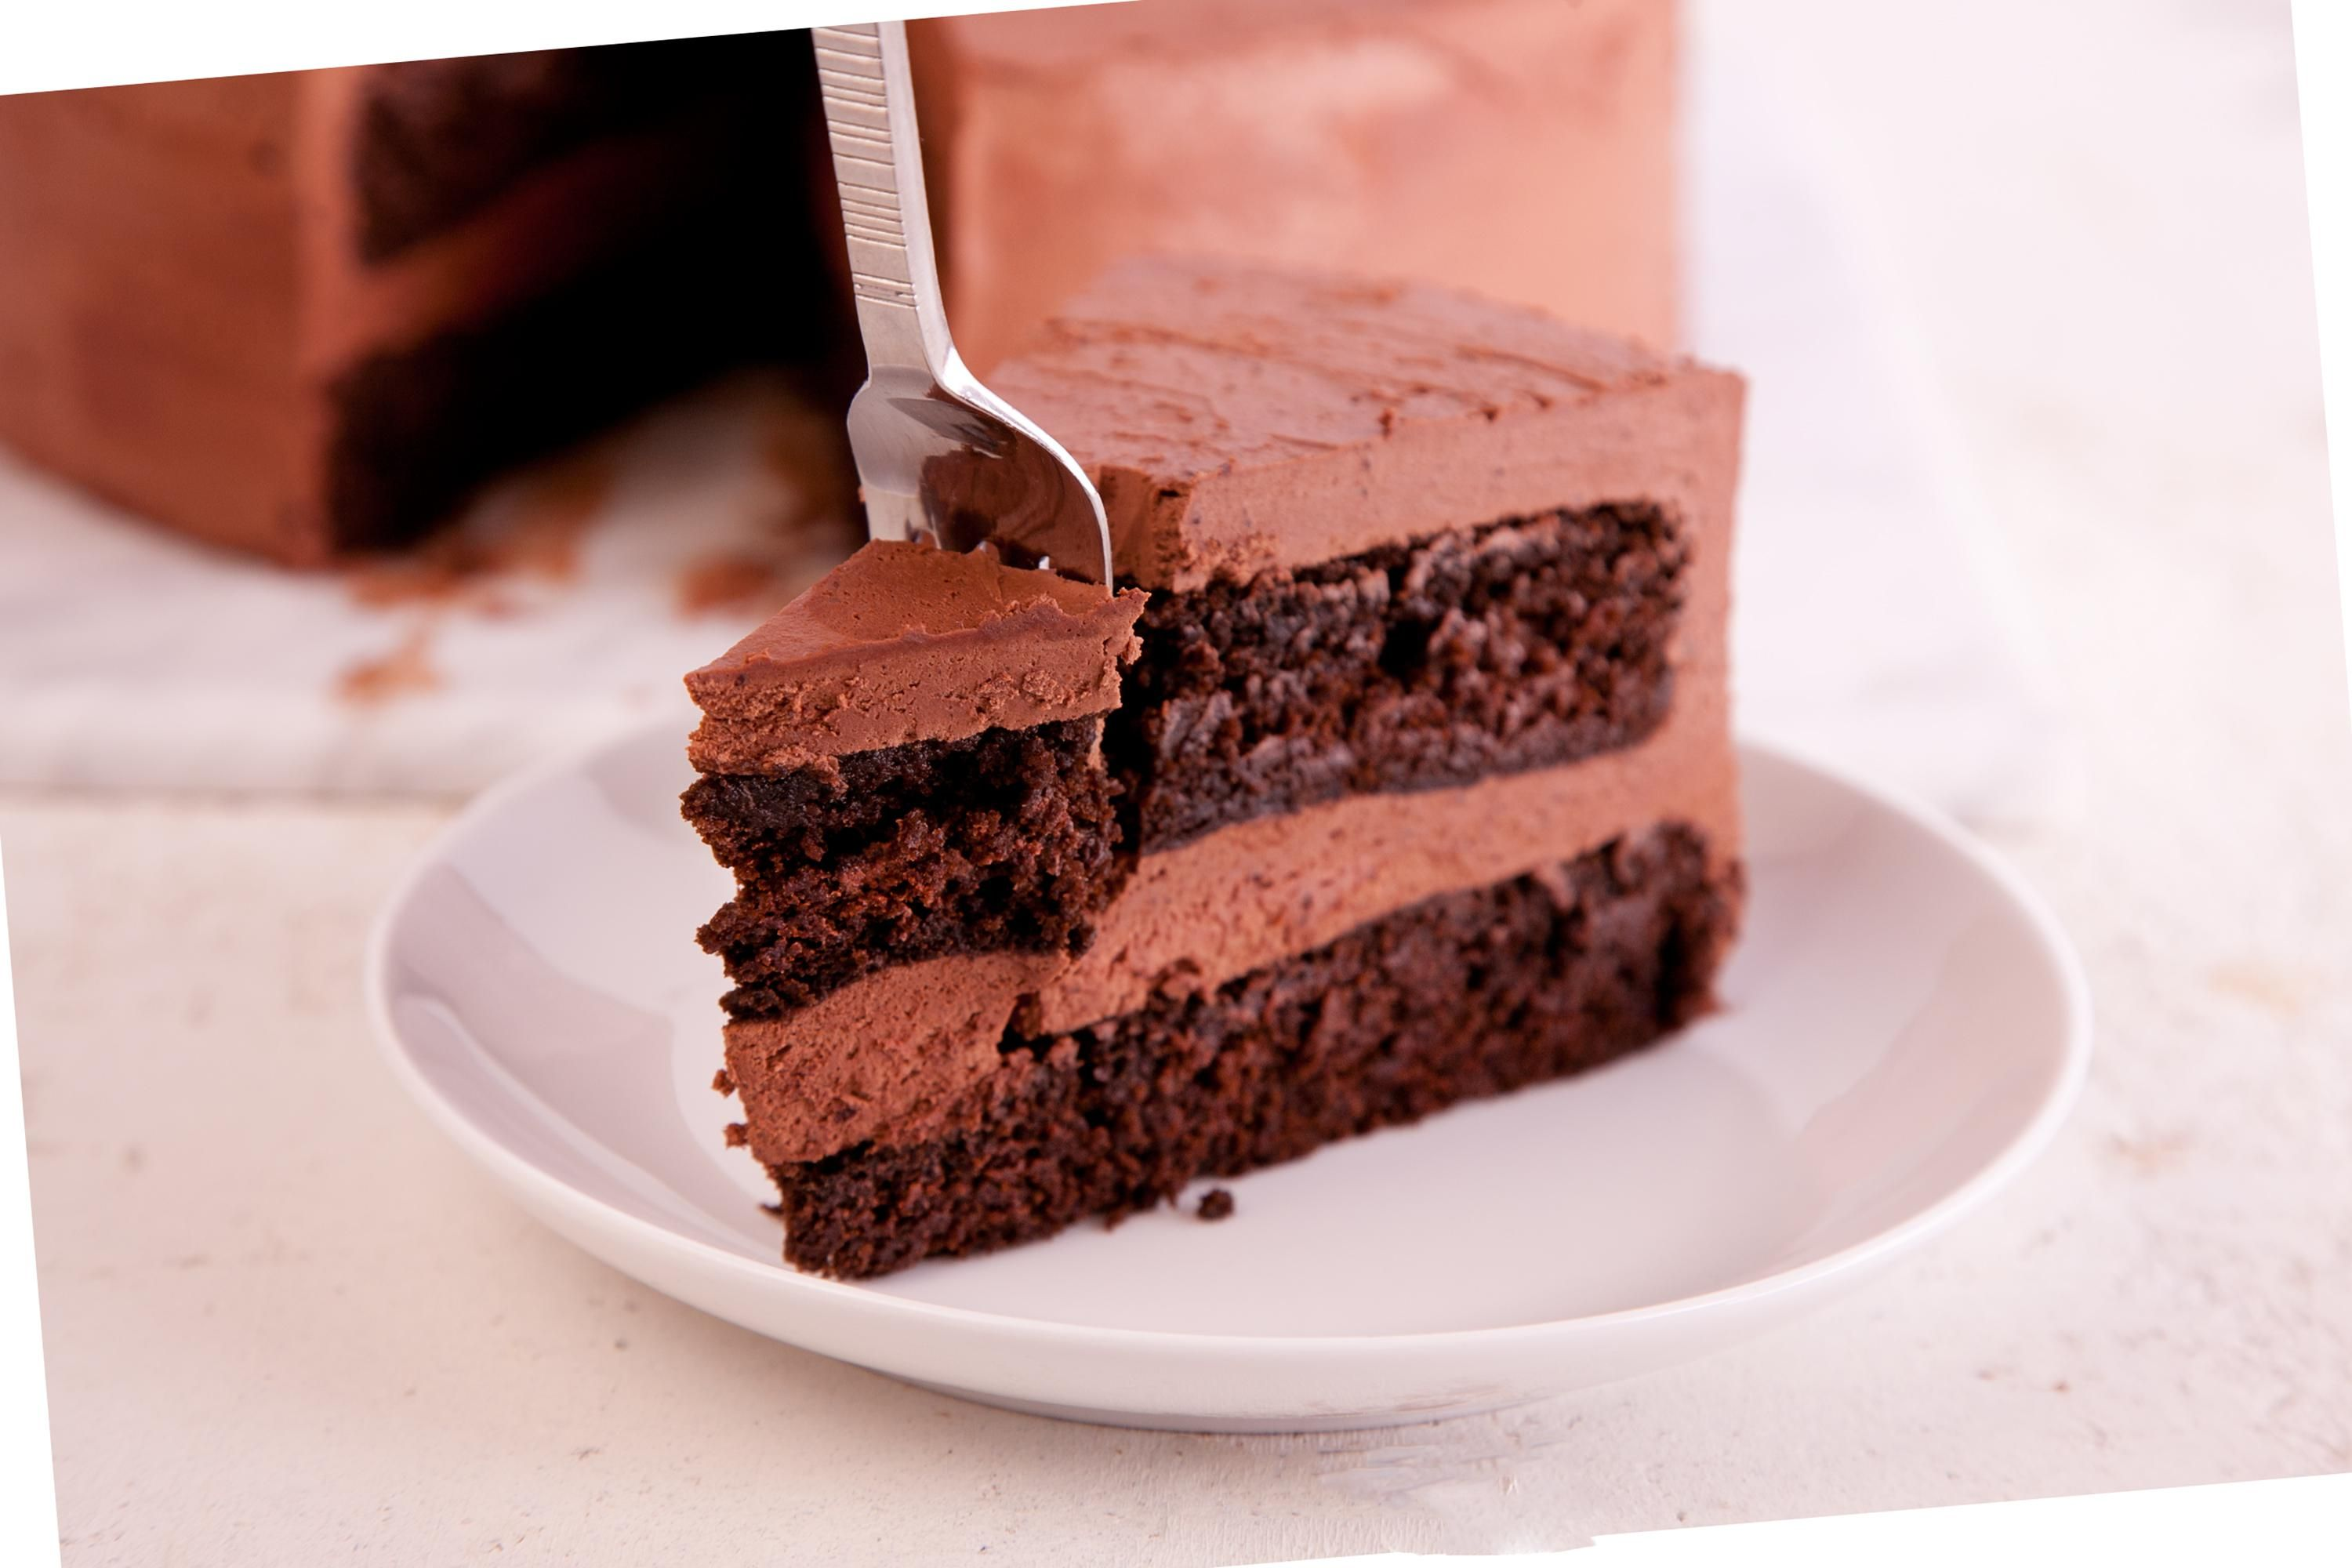 Vegan Chocolate Cake and Frosting Recipe Vegan chocolate